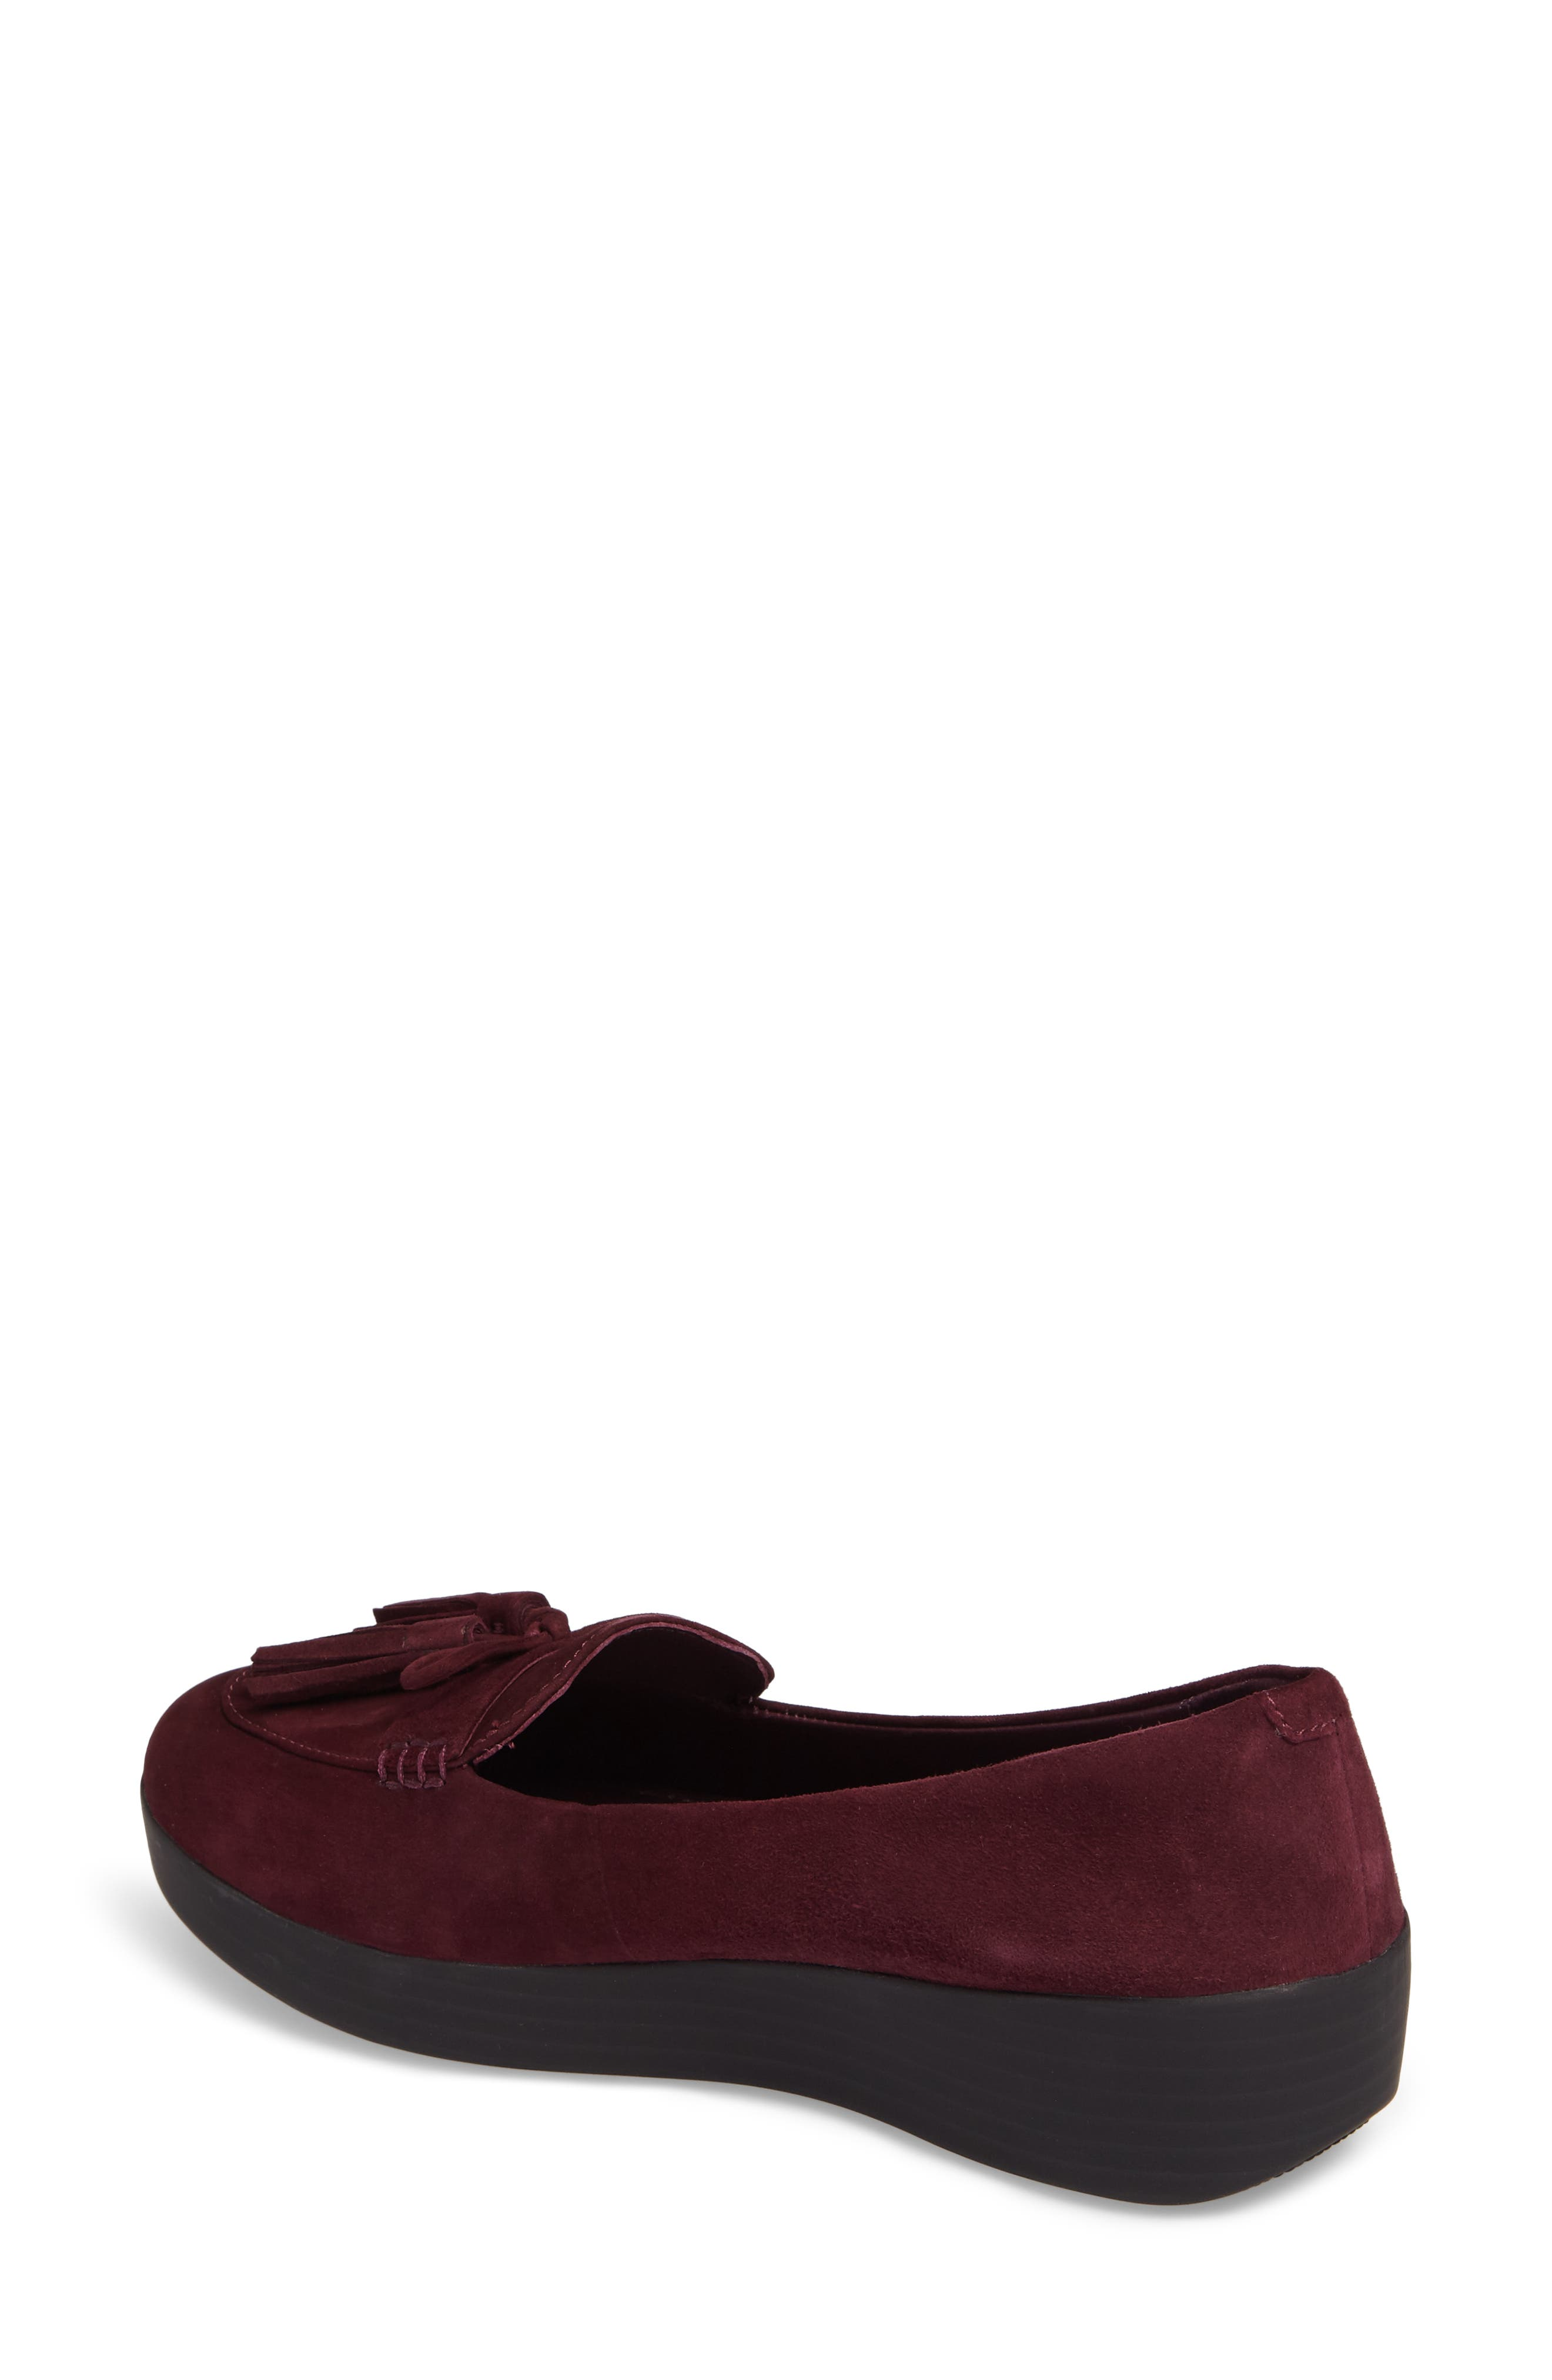 Tassel Bow Sneakerloafer<sup>™</sup> Water Repellent Flat,                             Alternate thumbnail 8, color,